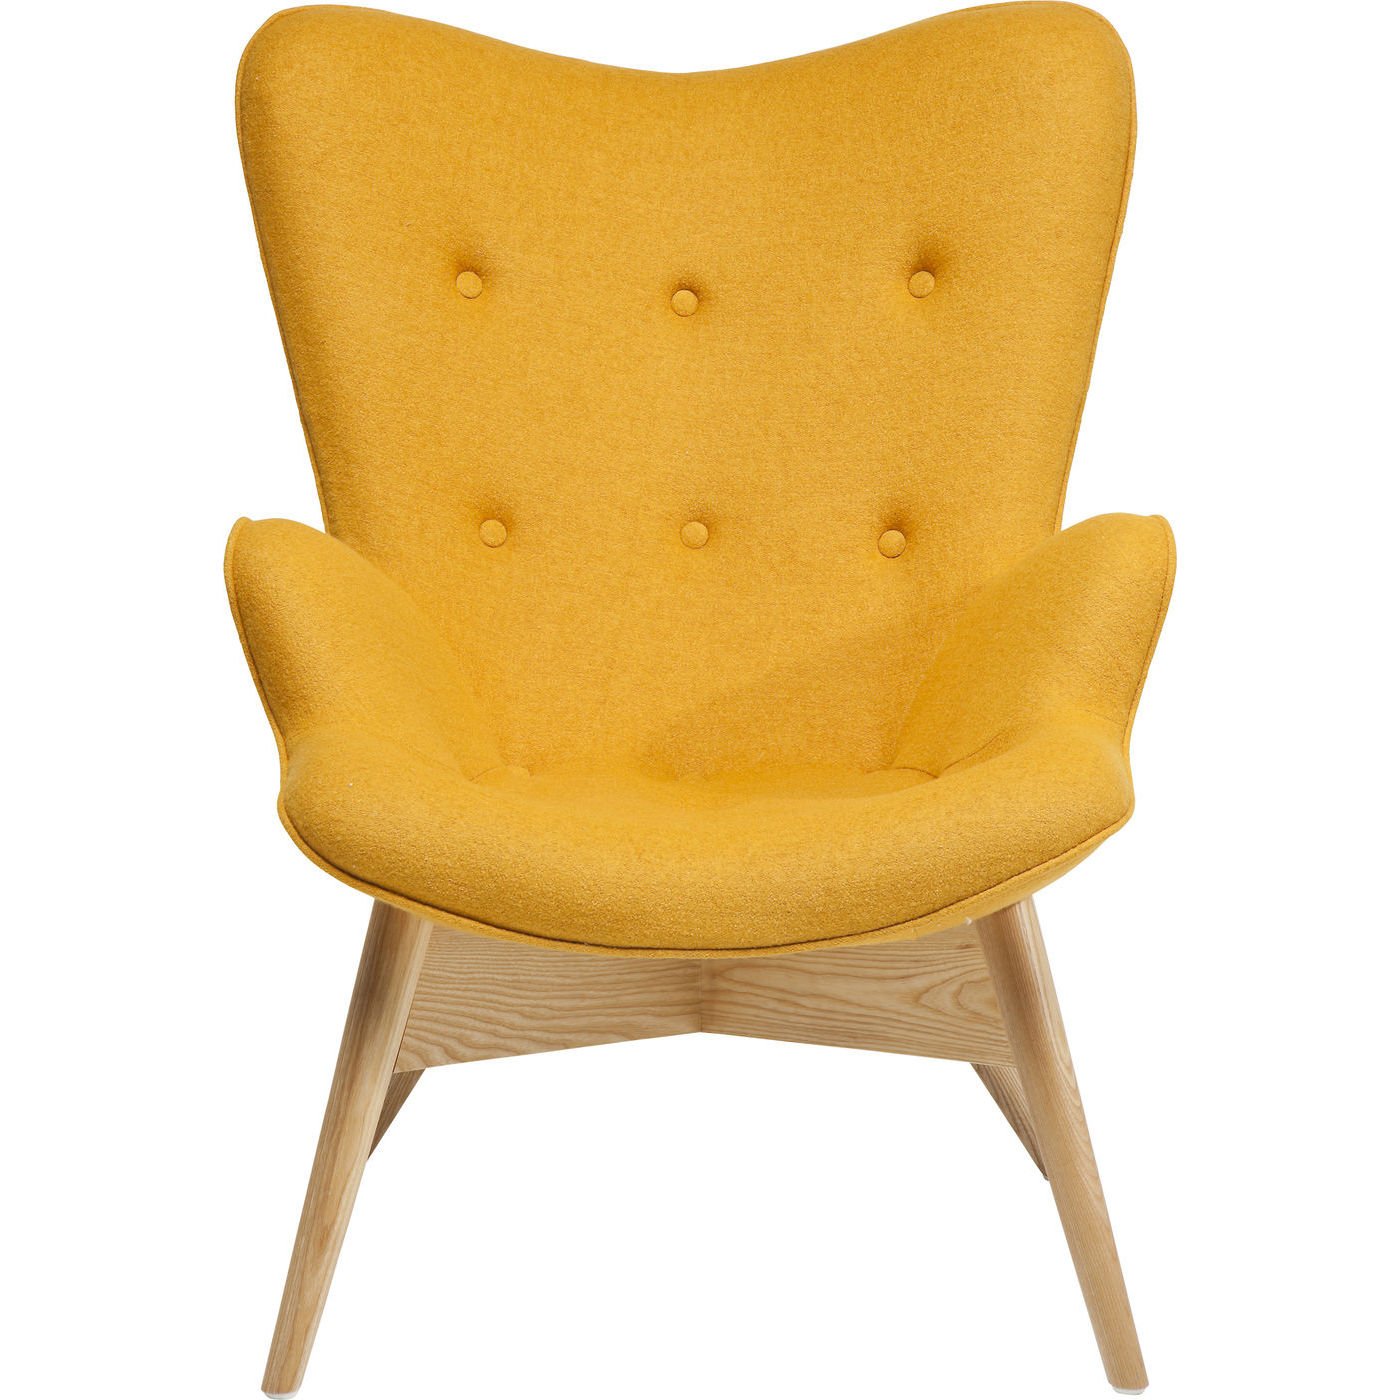 Image of   KARE DESIGN Hvilestol m. Armlæn, Angels s Yellow Eco